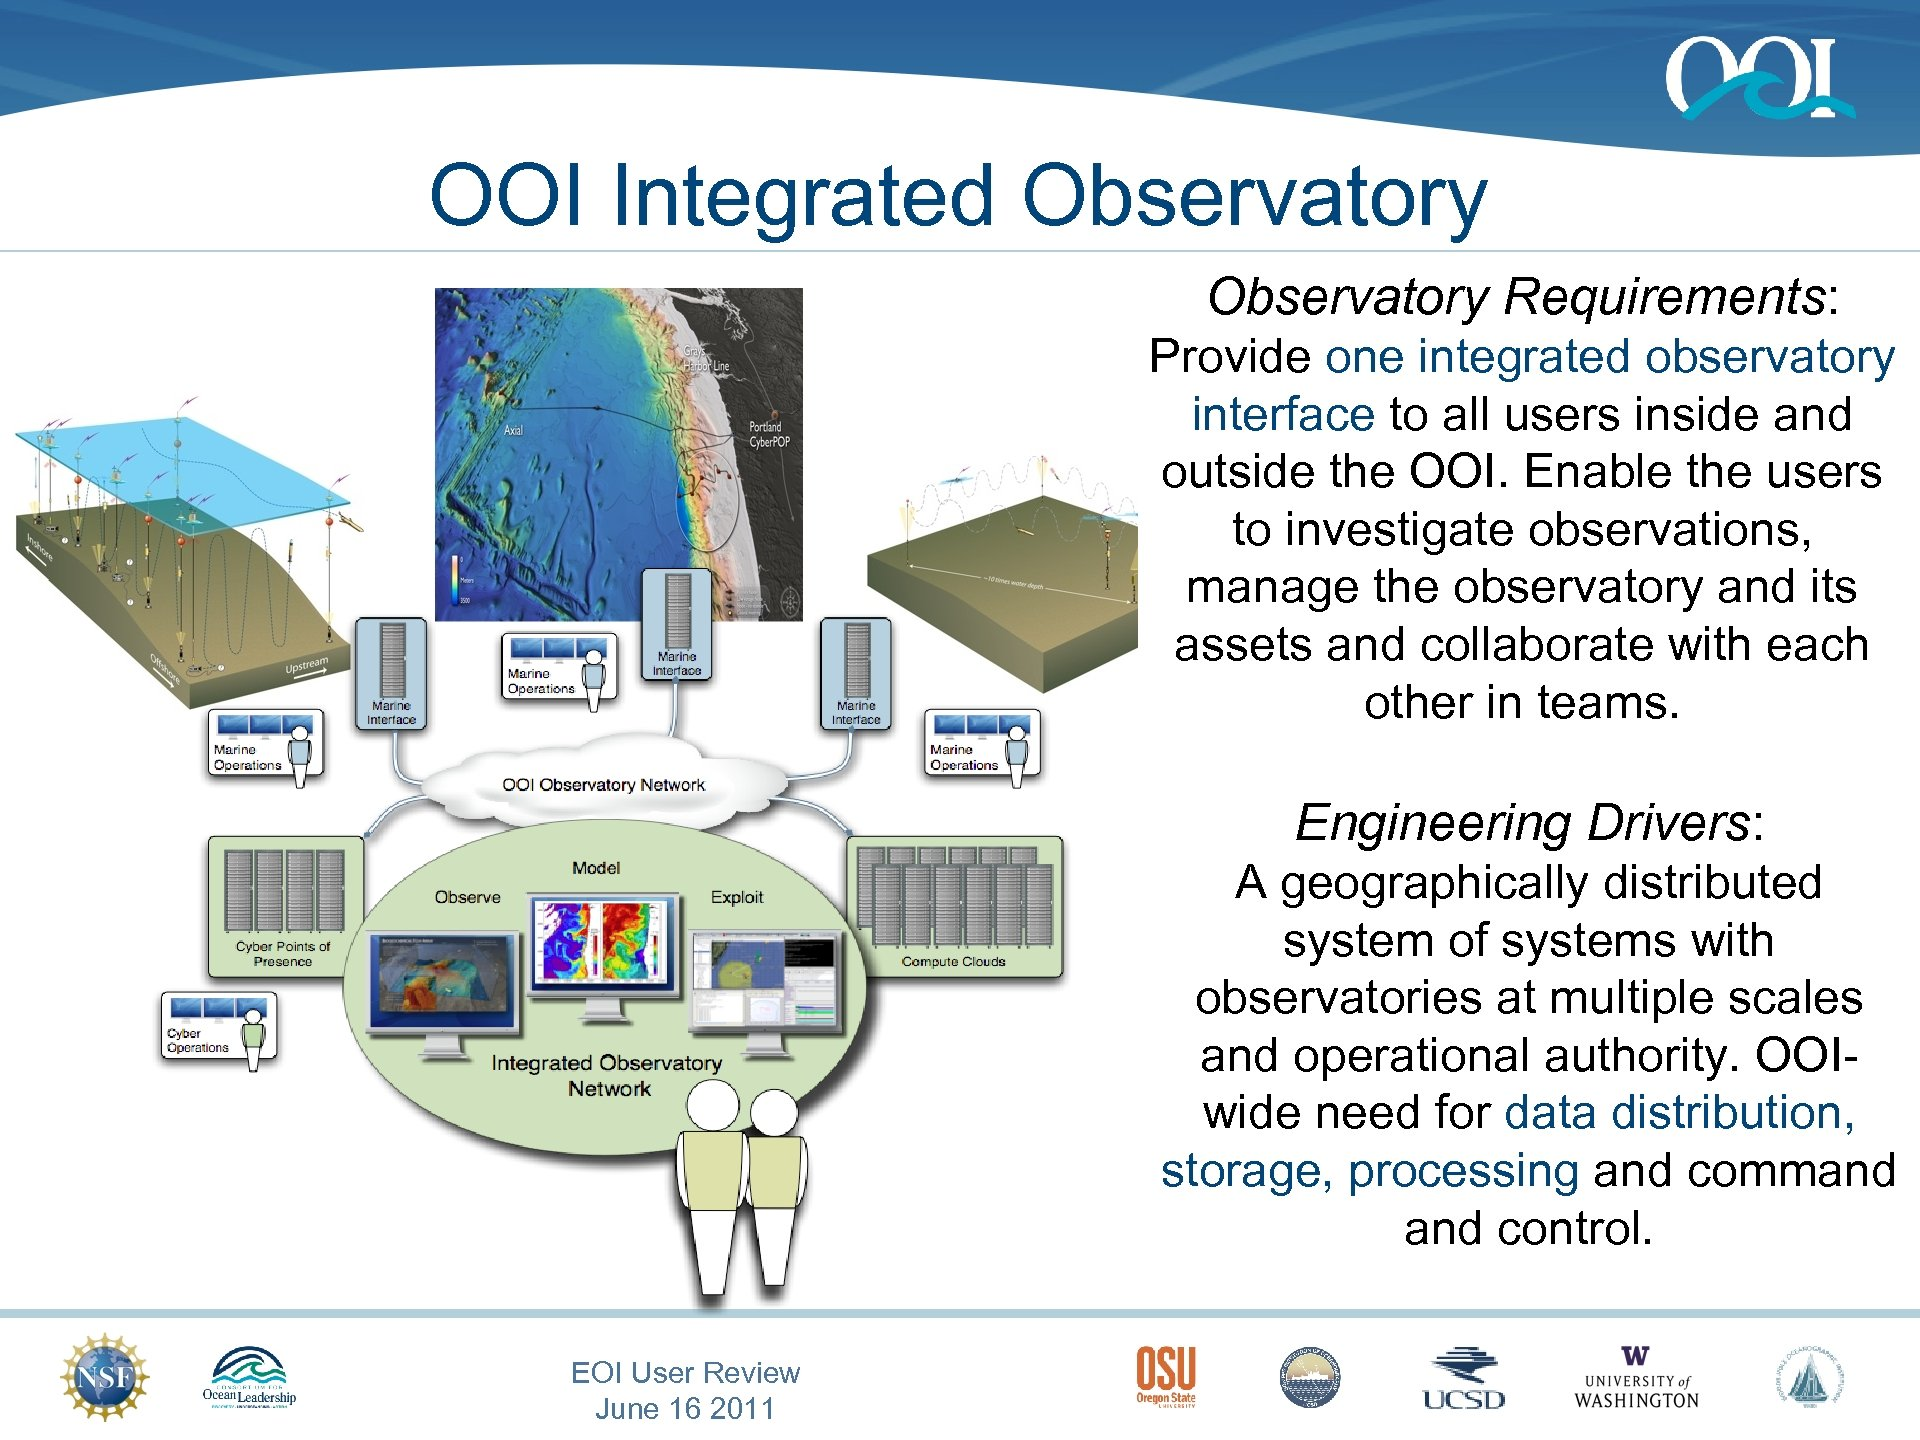 OOI Integrated Observatory Requirements: Provide one integrated observatory interface to all users inside and